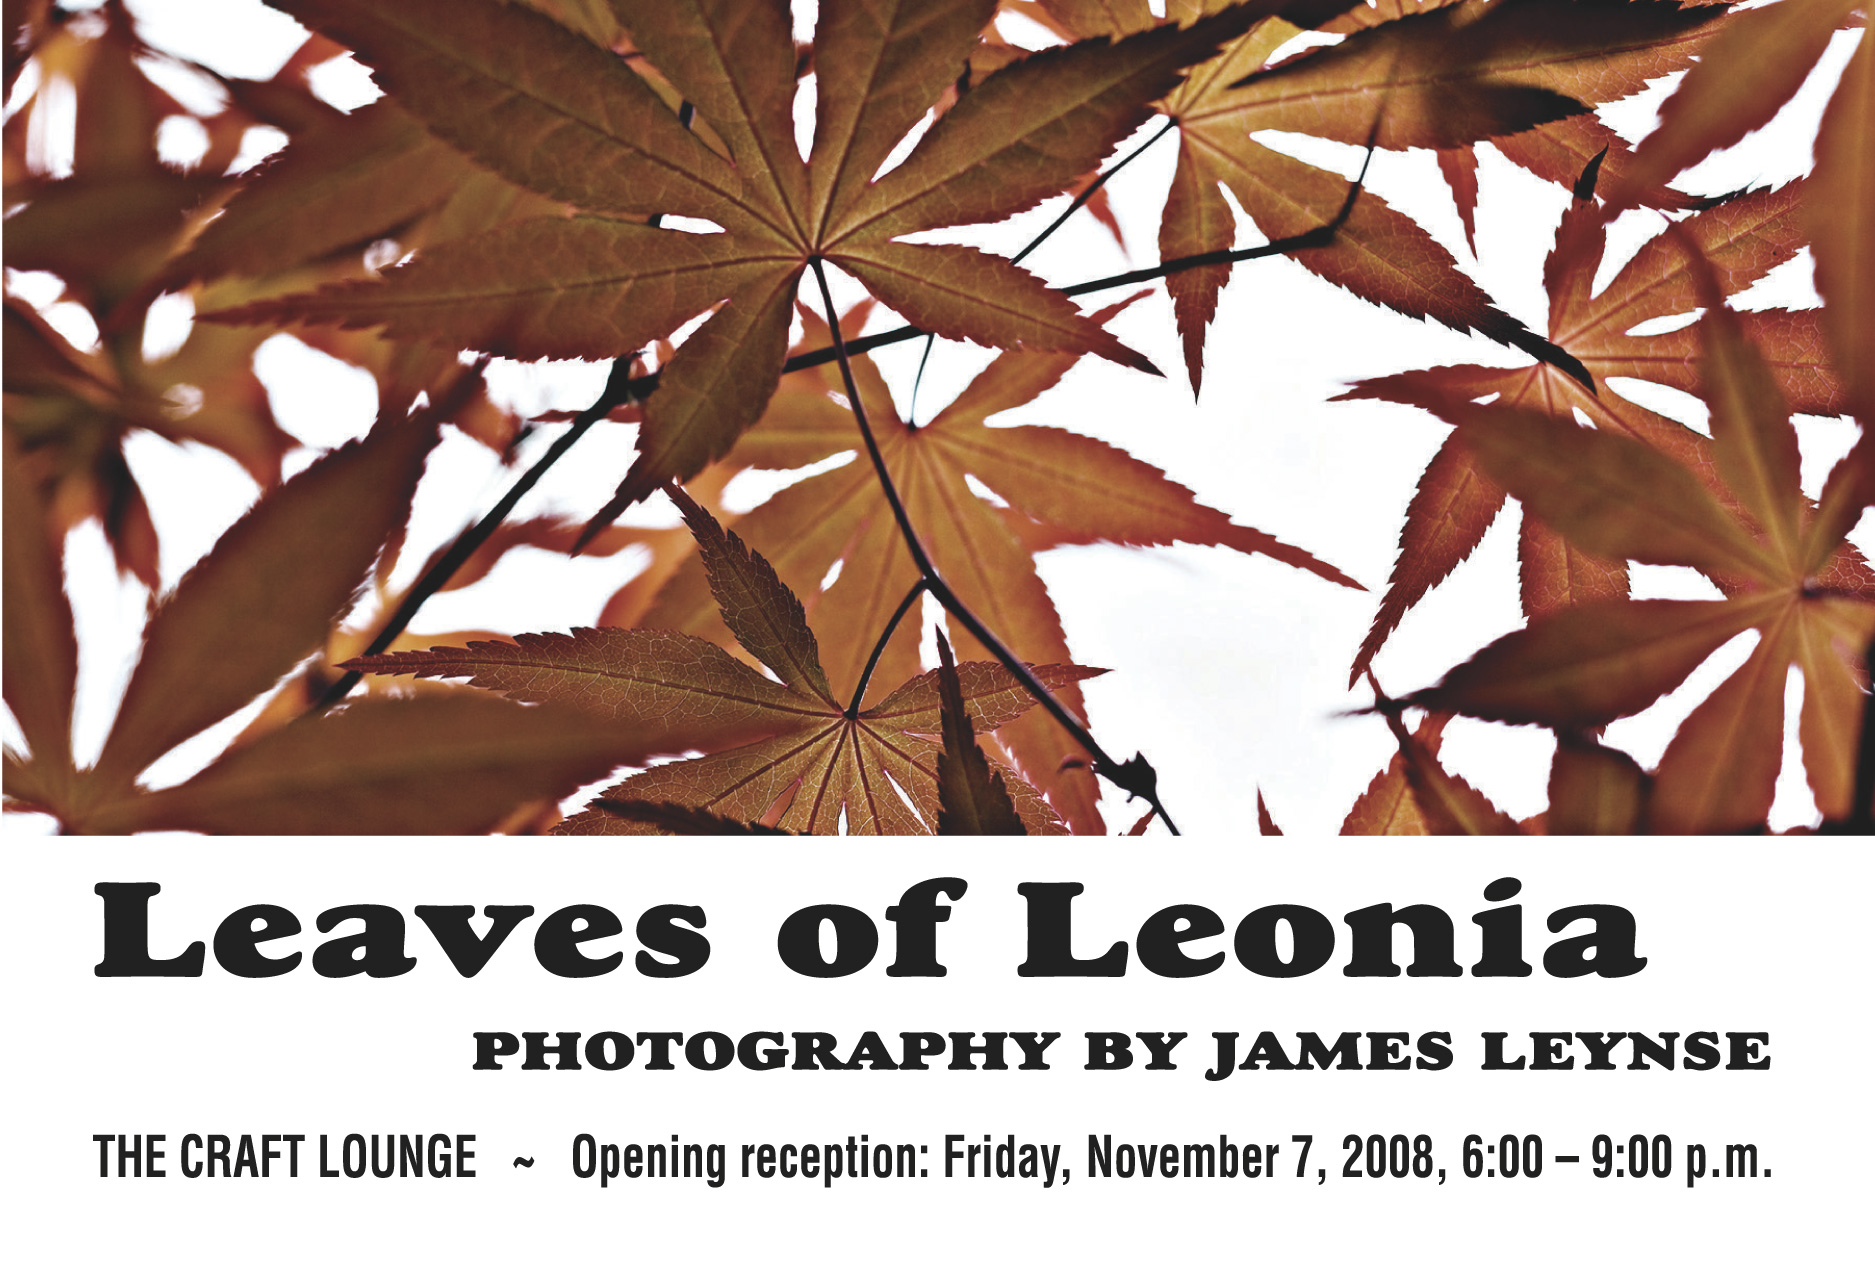 Leaves of Leonia Photography